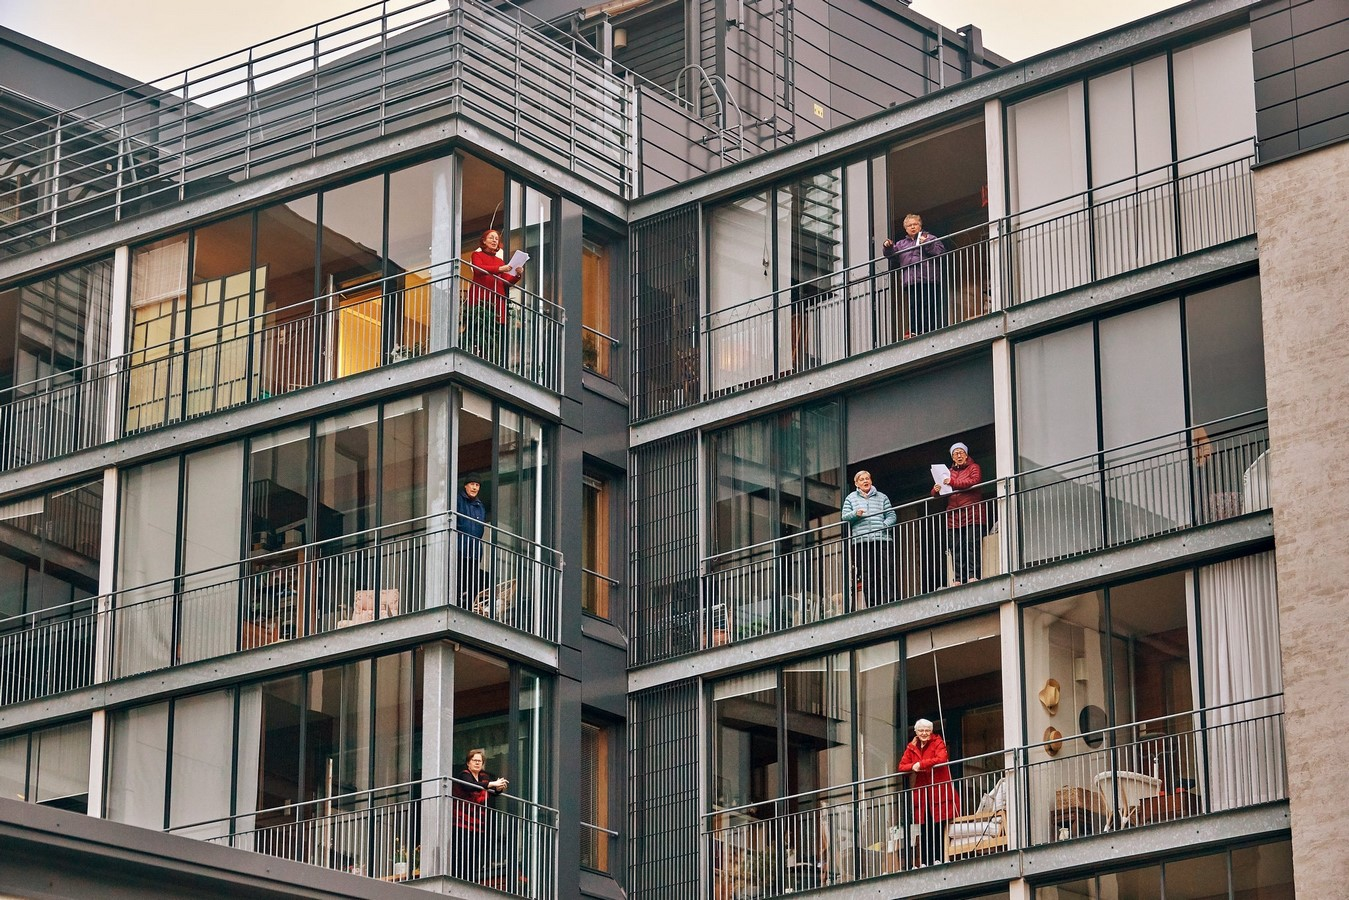 How balconies gained importance in Lockdown? - Sheet4